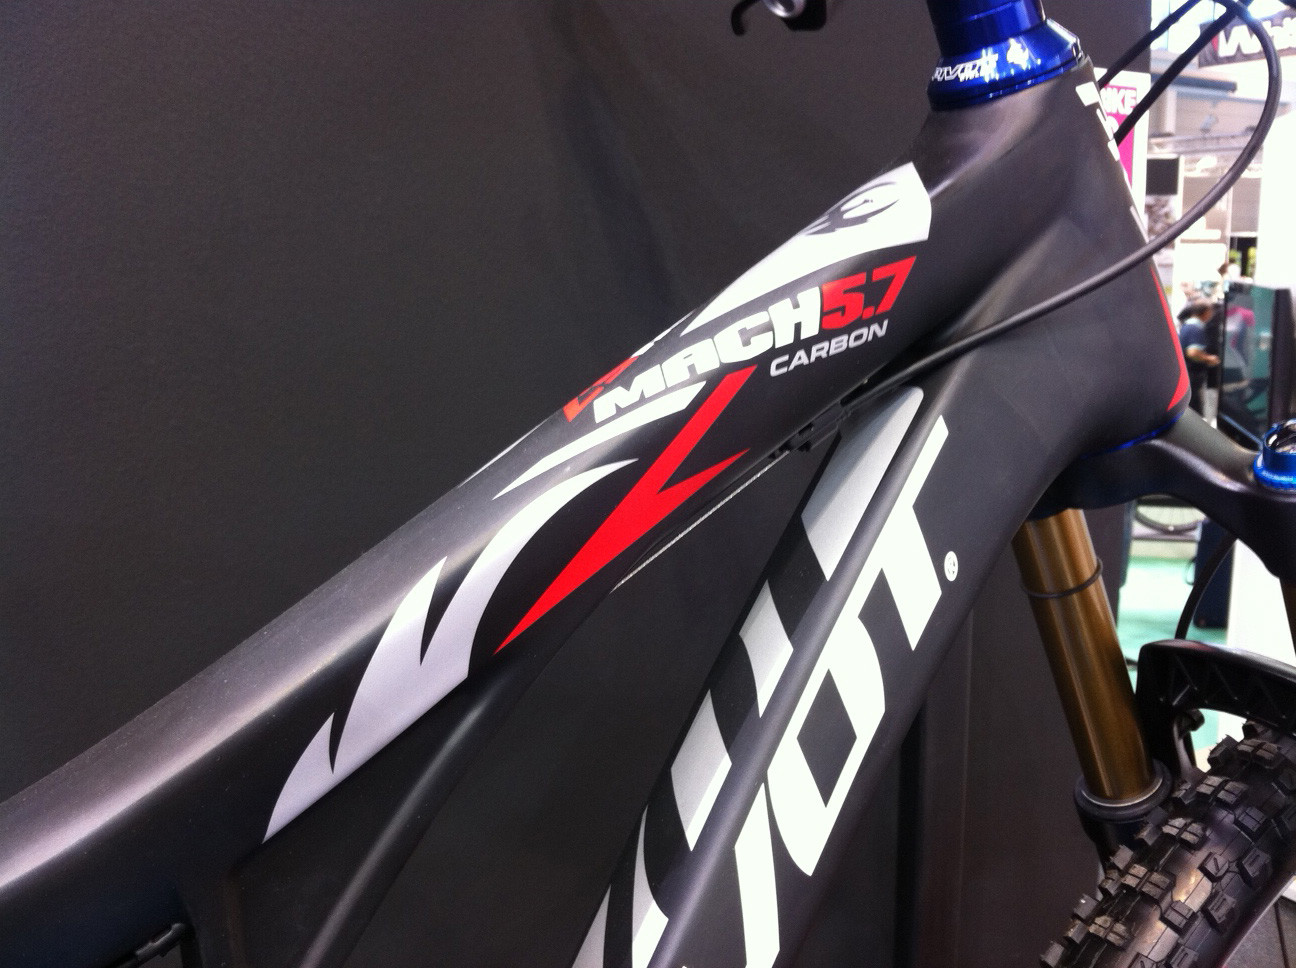 Pivot Mach 5.7 detail - Eurobike 2011 - Mountain Biking Pictures - Vital MTB